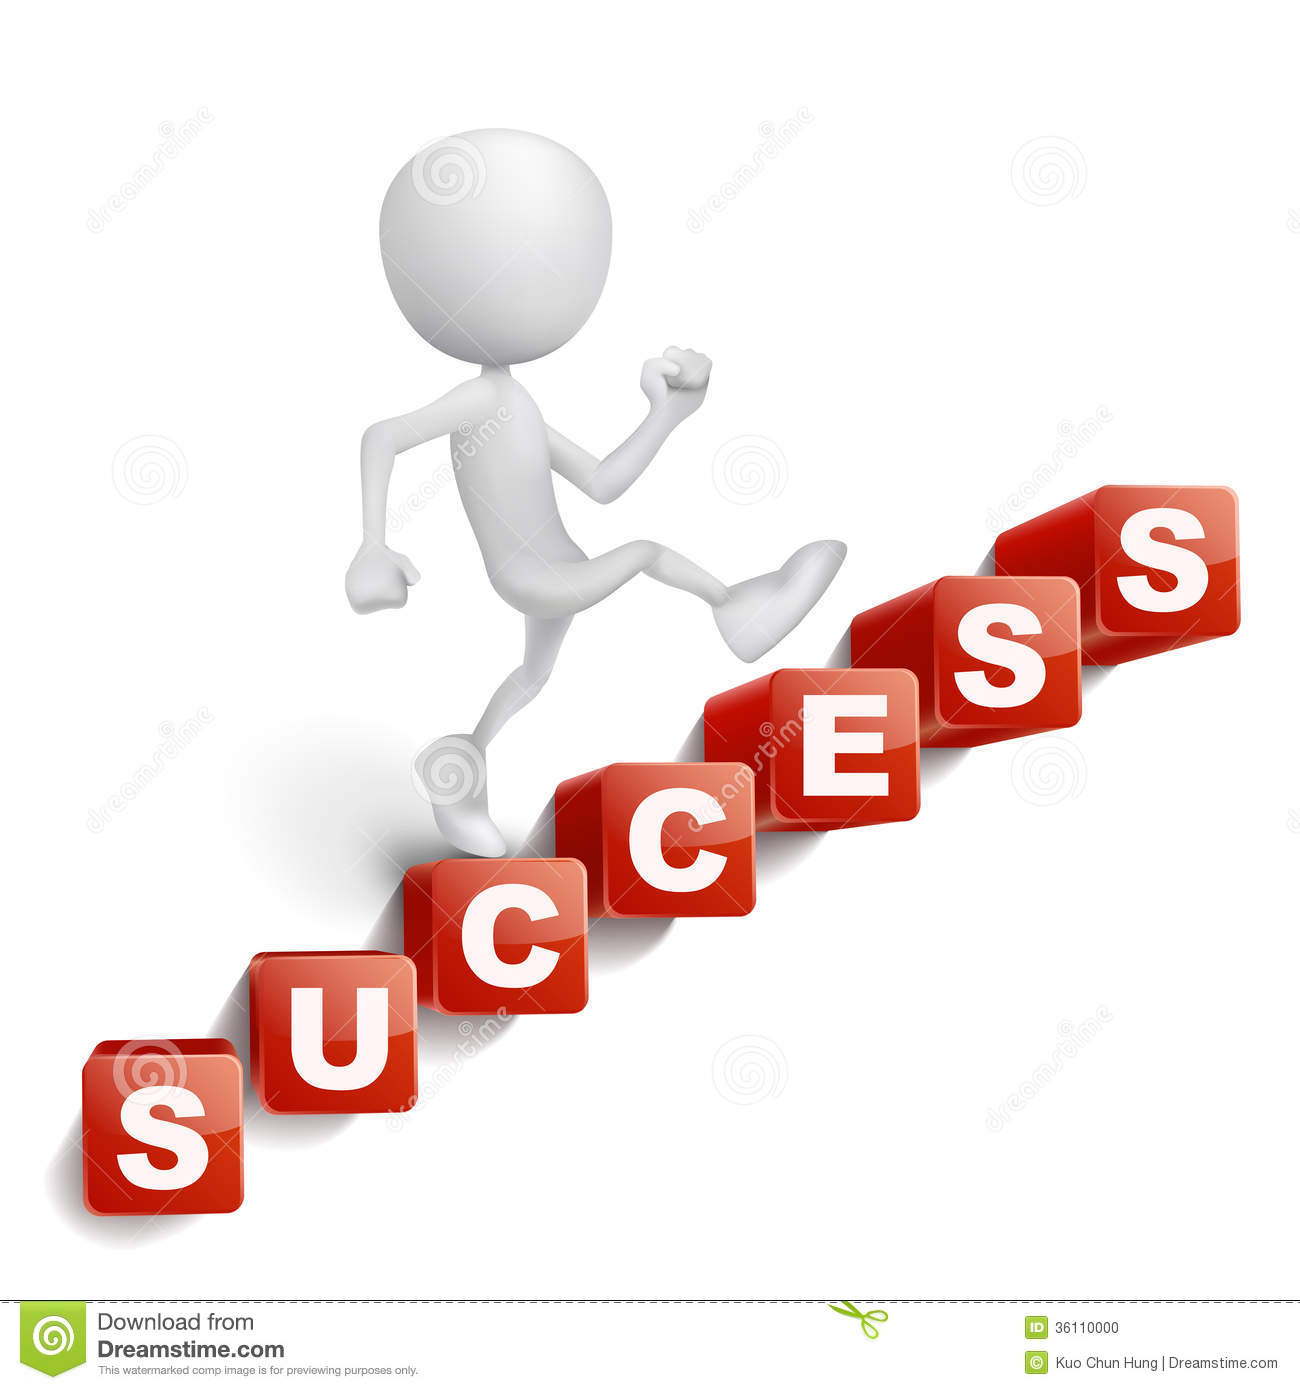 Clipart steps to success.